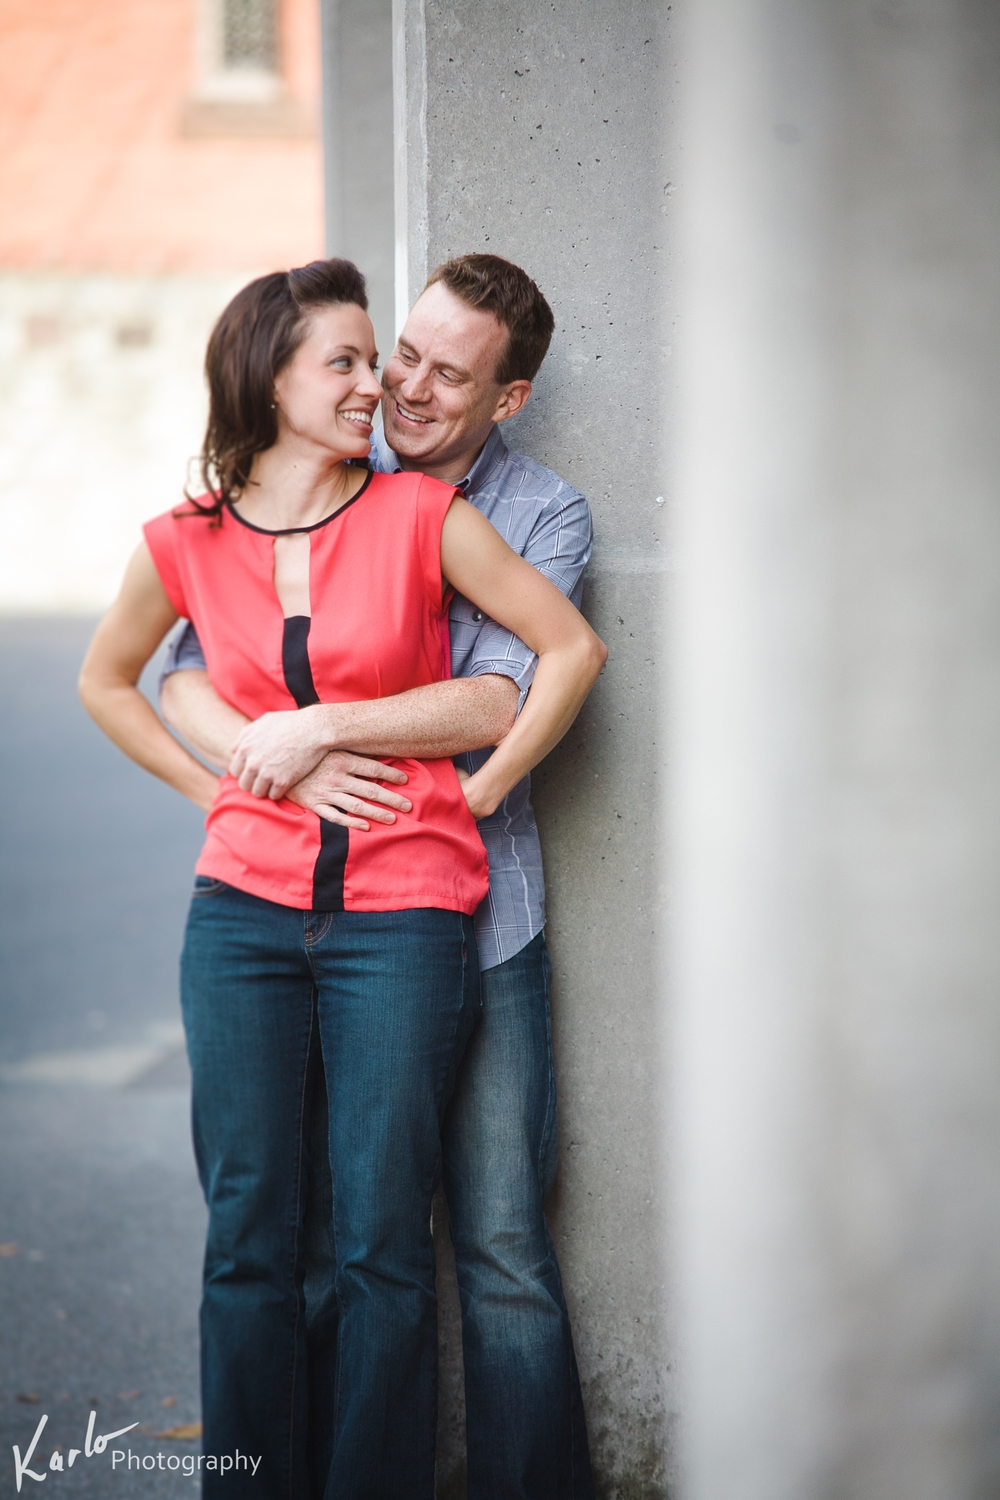 Karlo Photography - Frederick MD Maryland Engagement Photographer0013.JPG